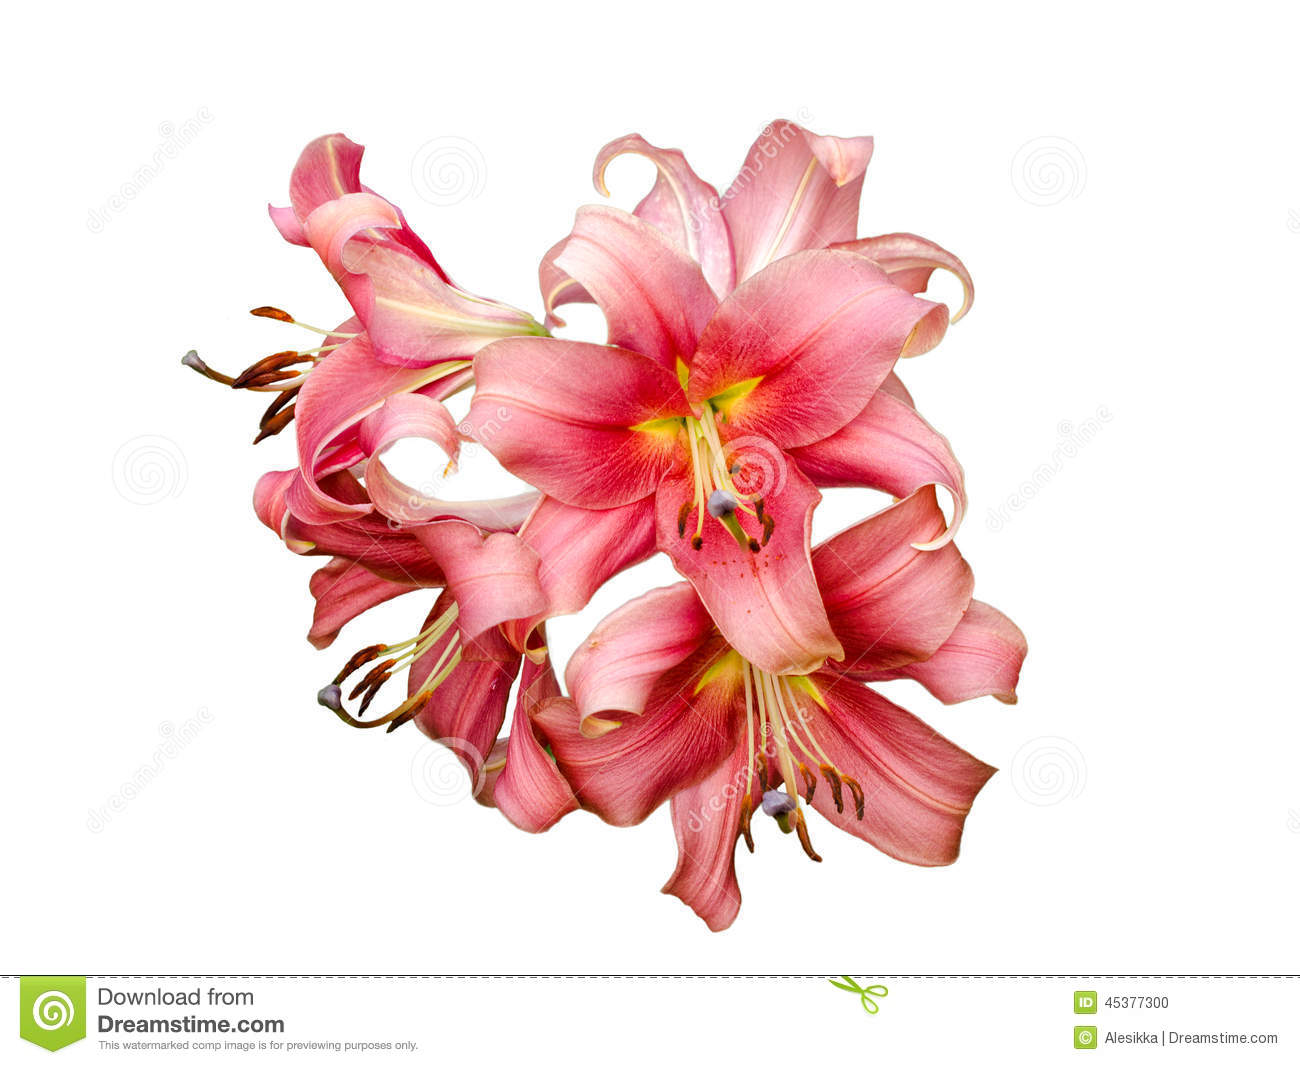 Lily varieties flowers stock photo image of beautiful 45377300 lily varieties flowers izmirmasajfo